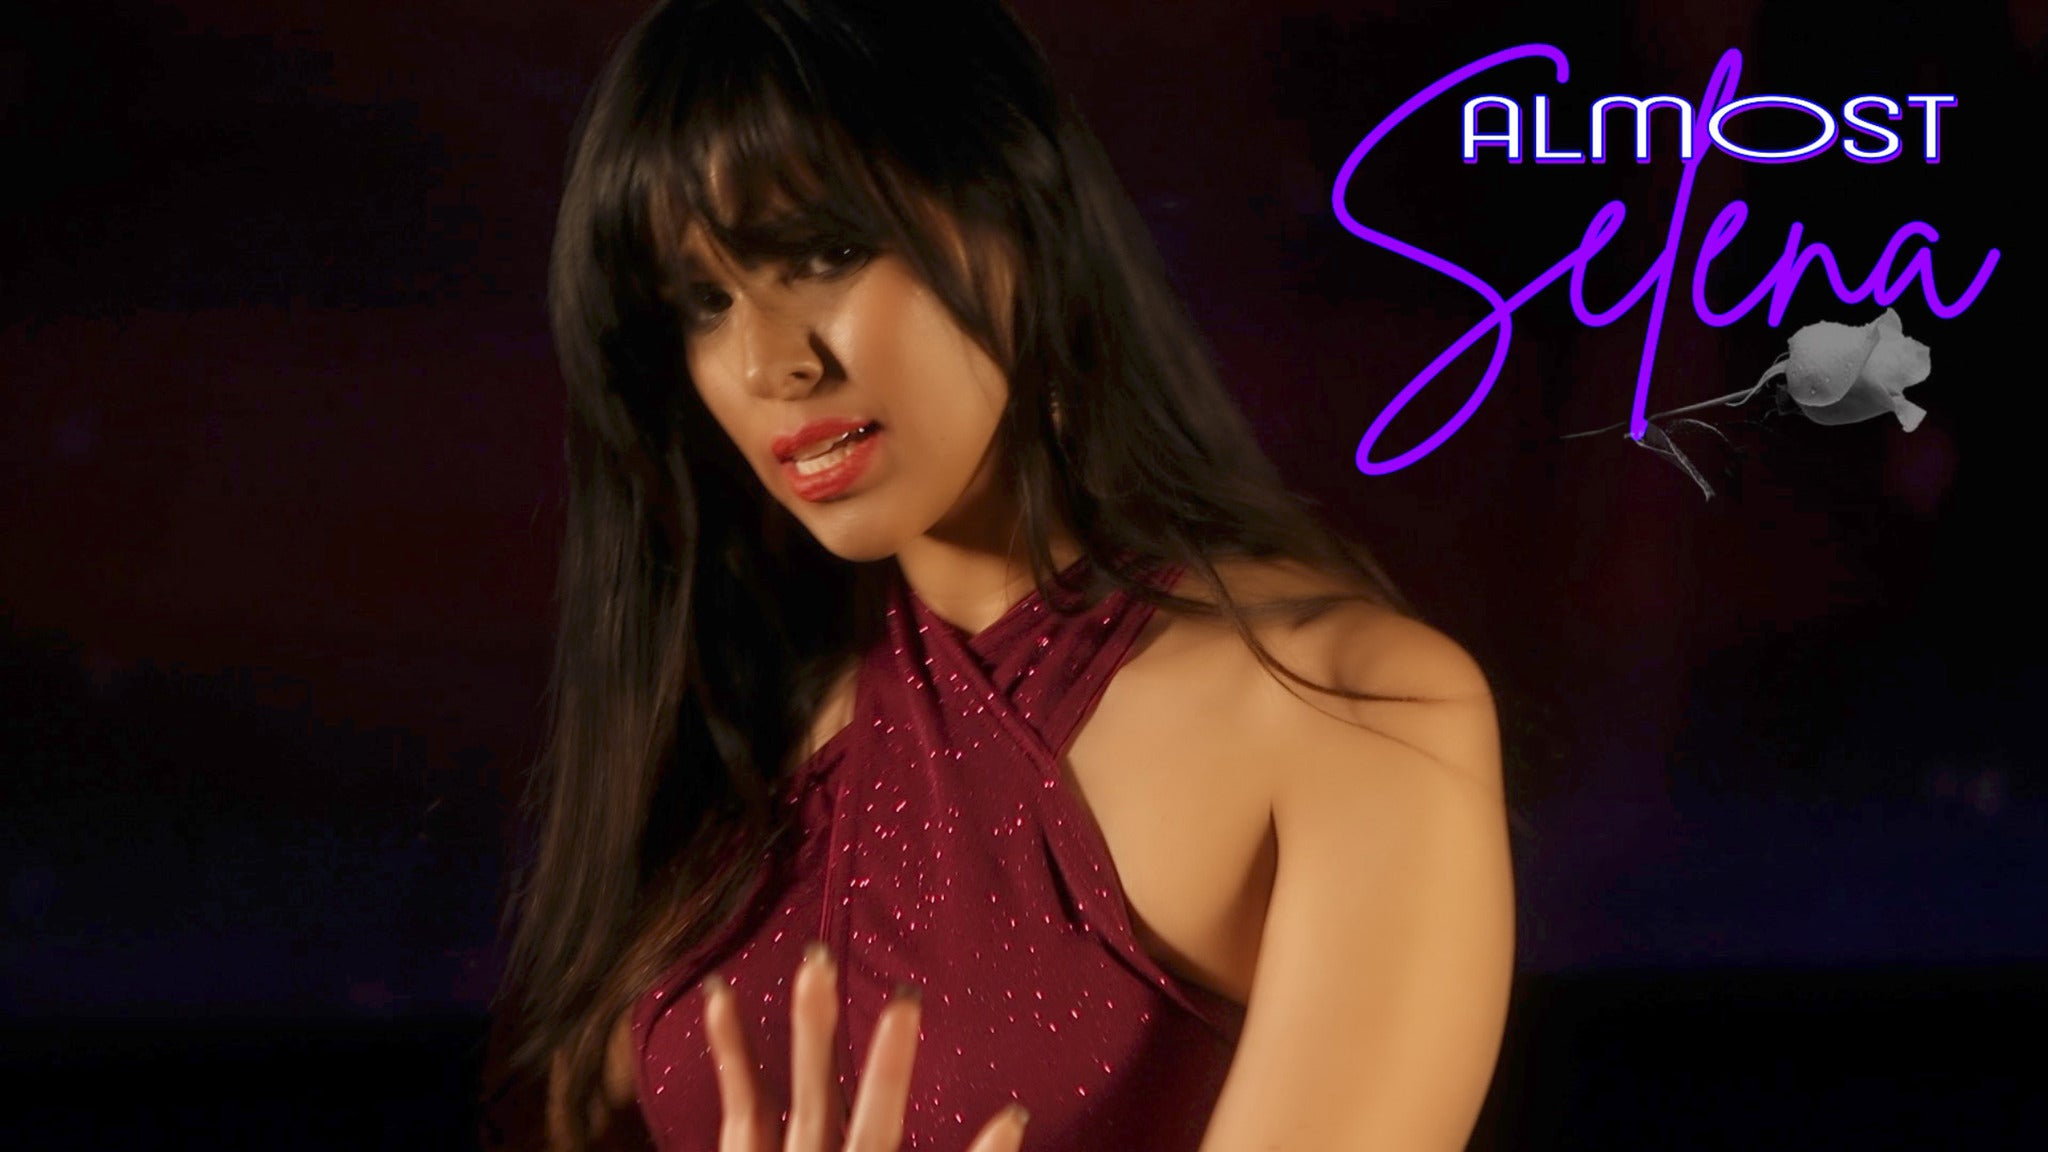 Almost Selena: A Tribute To The Final Performance